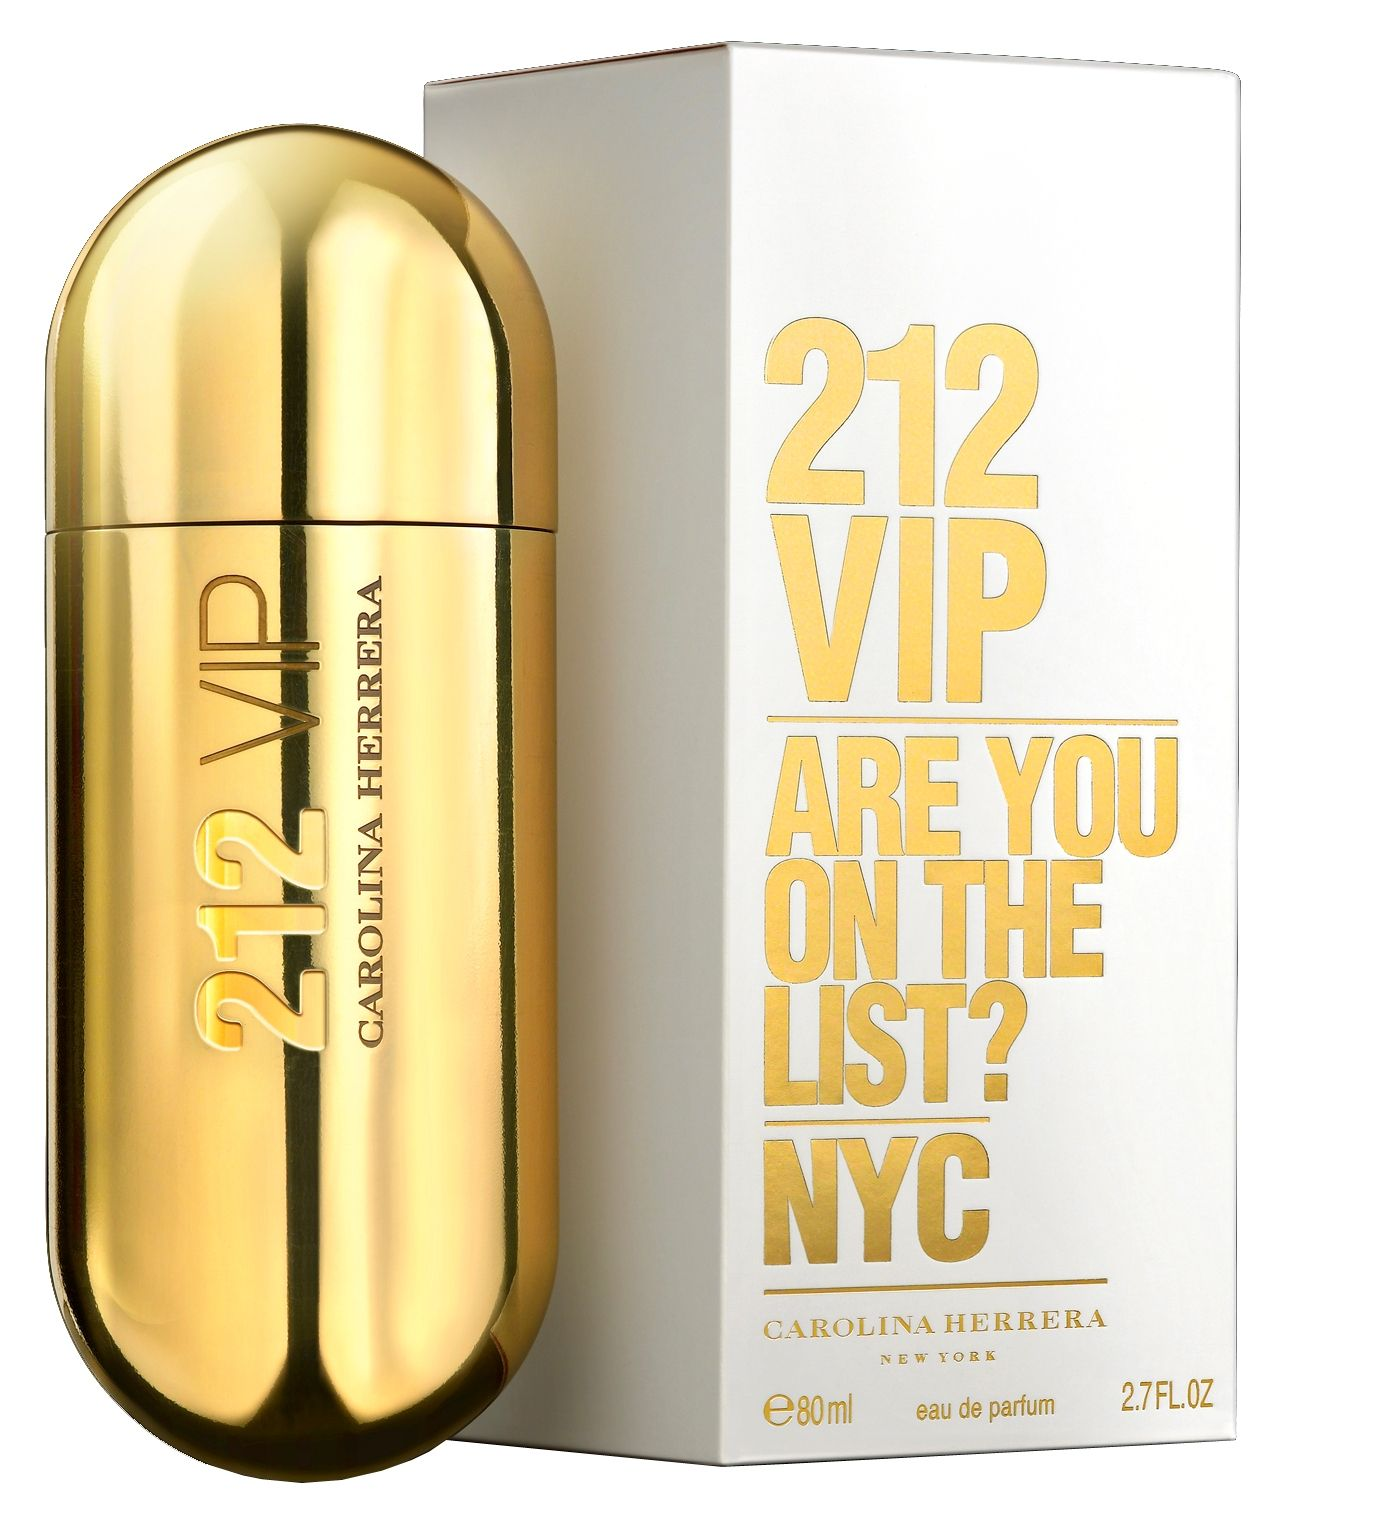 Try Carolina Herrera 212 Vip Fragrance Introduced In 2010 By